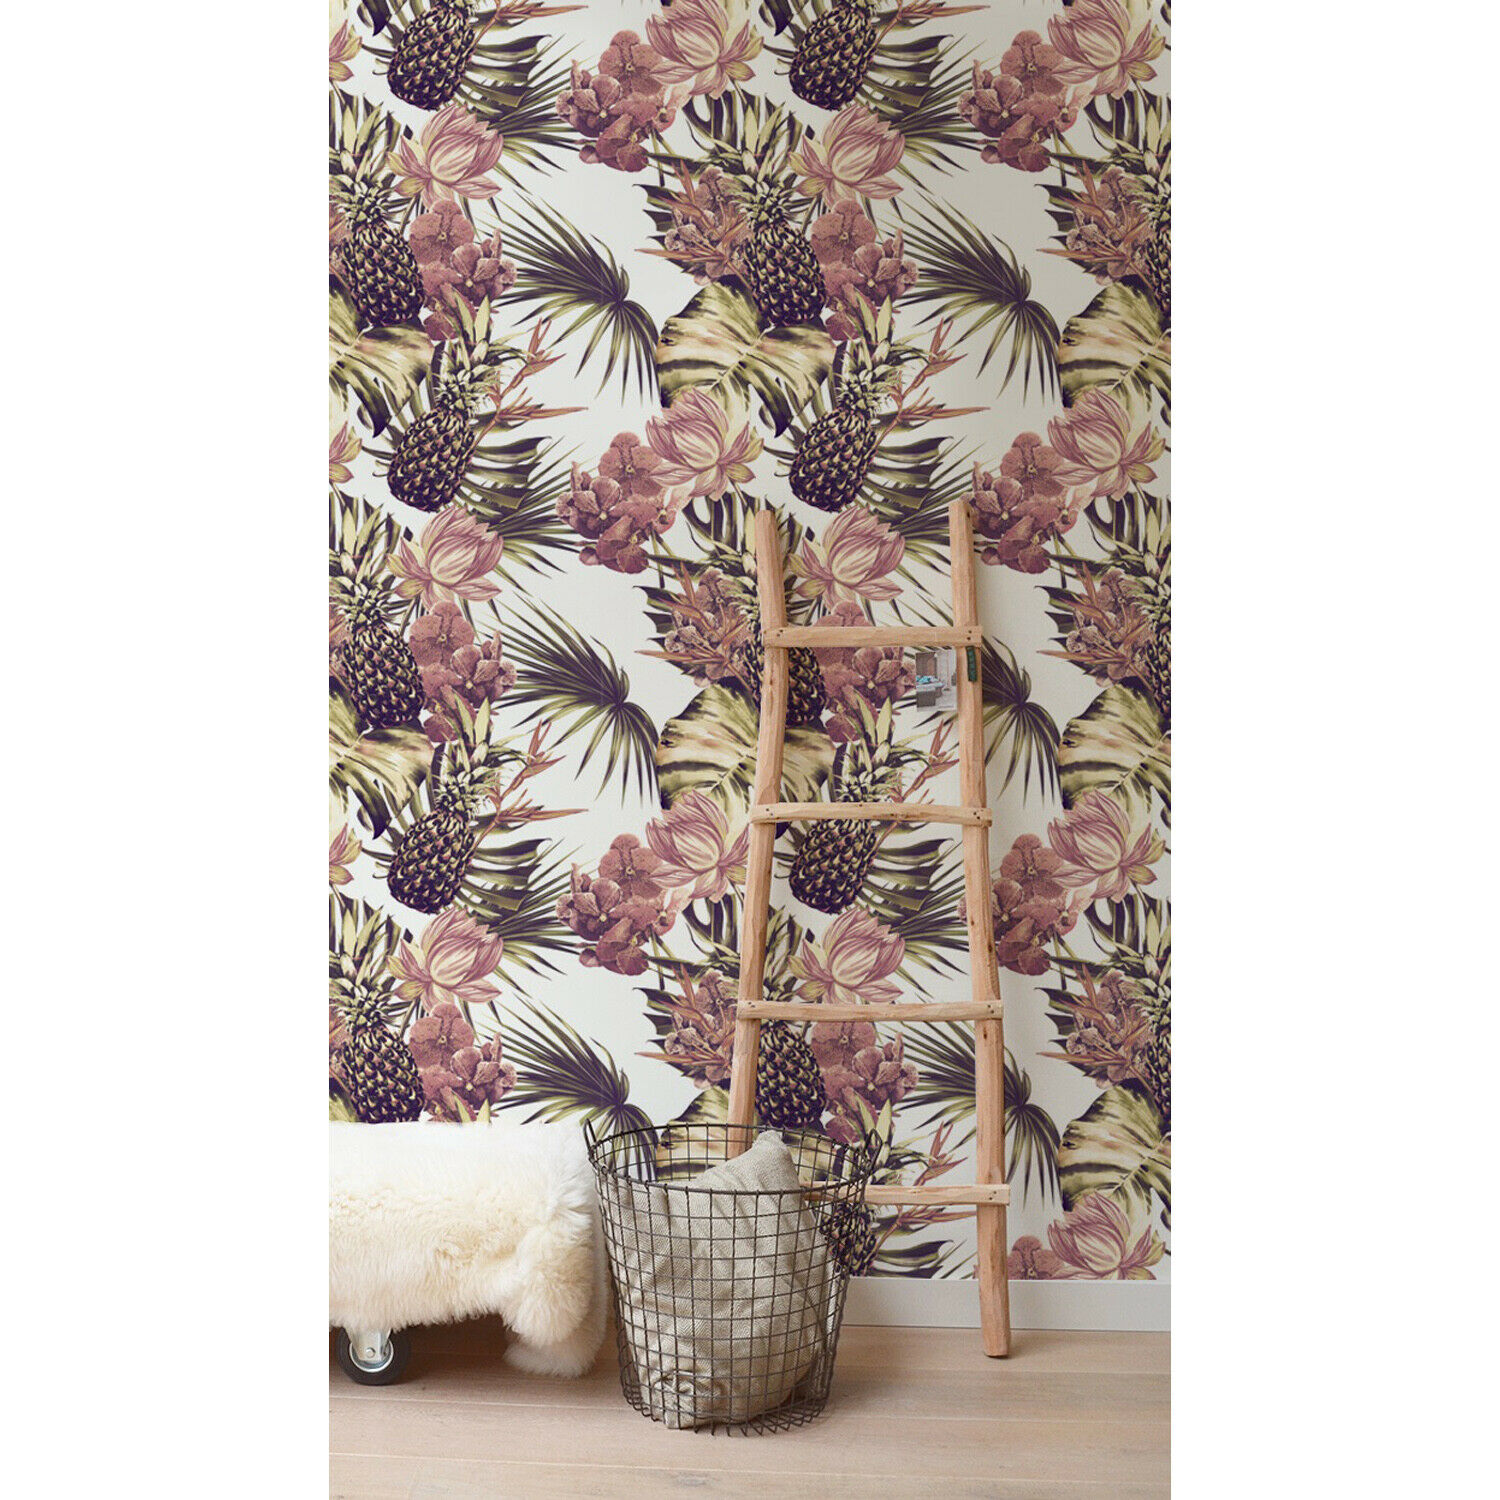 Tropical Renters Palms Leaves and Pineapple Design Self Adhesive Wall Mural